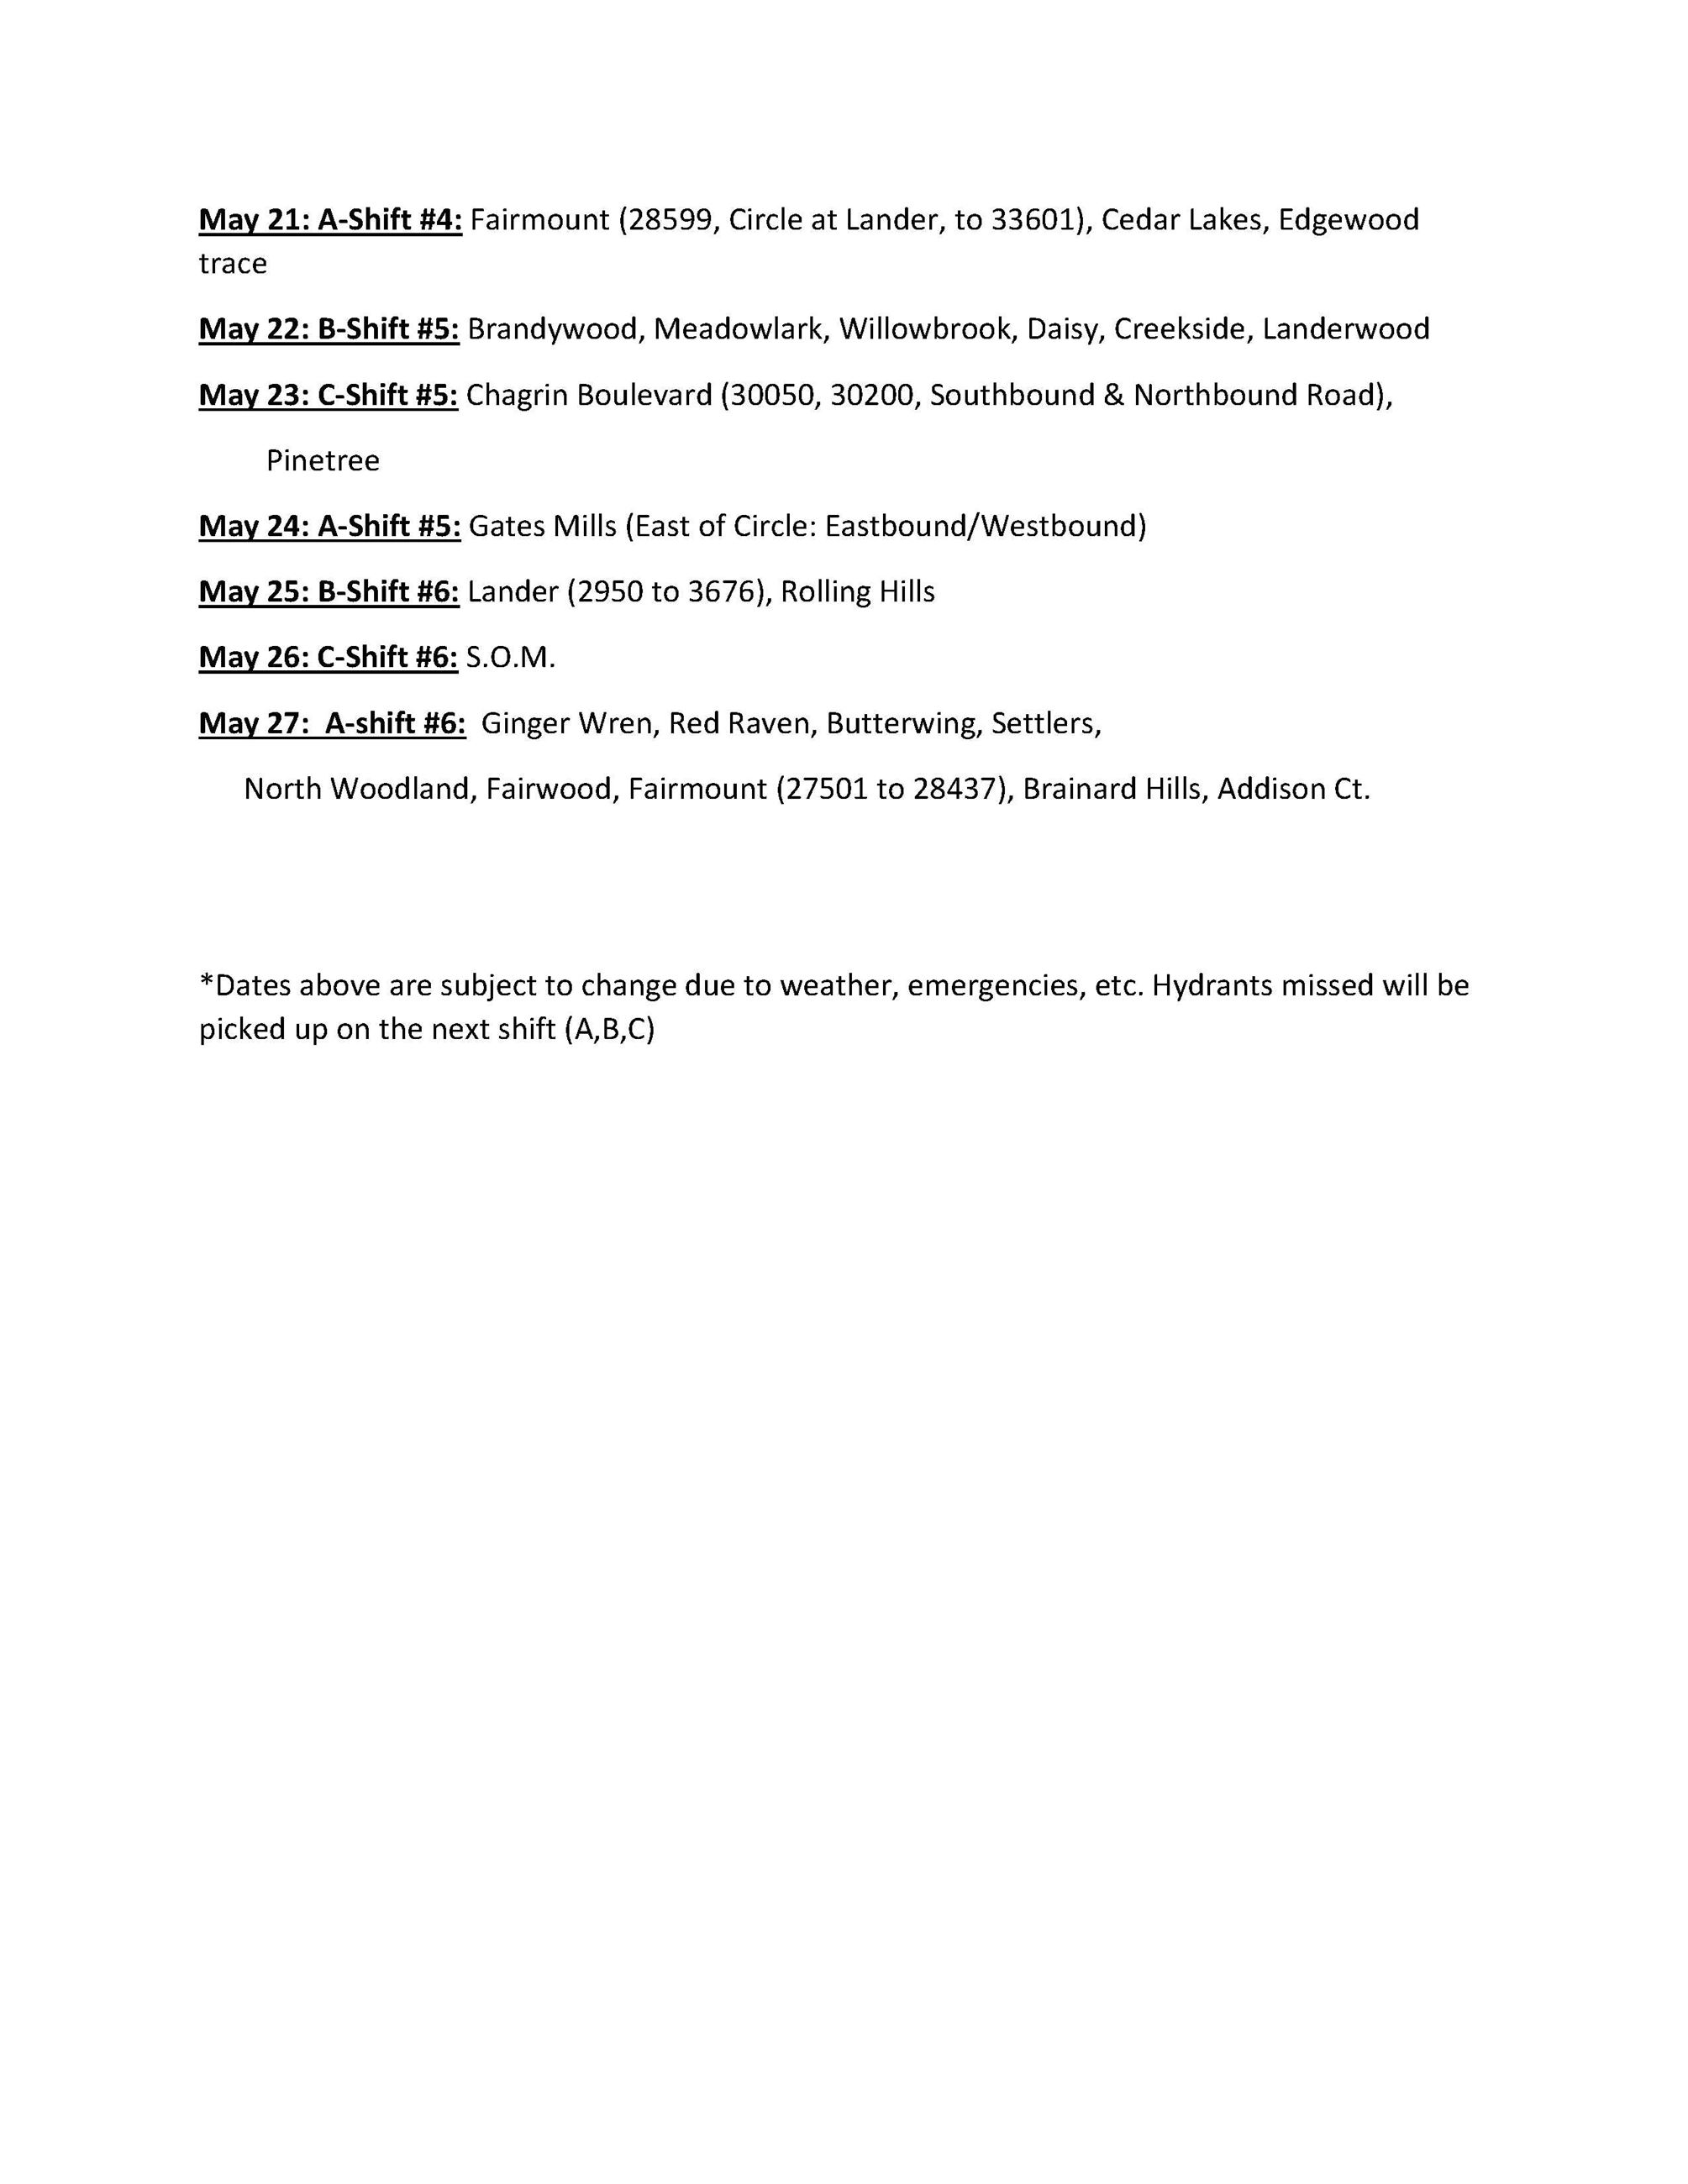 TENTATIVE FLUSHING SCHEDULE21-resident_2